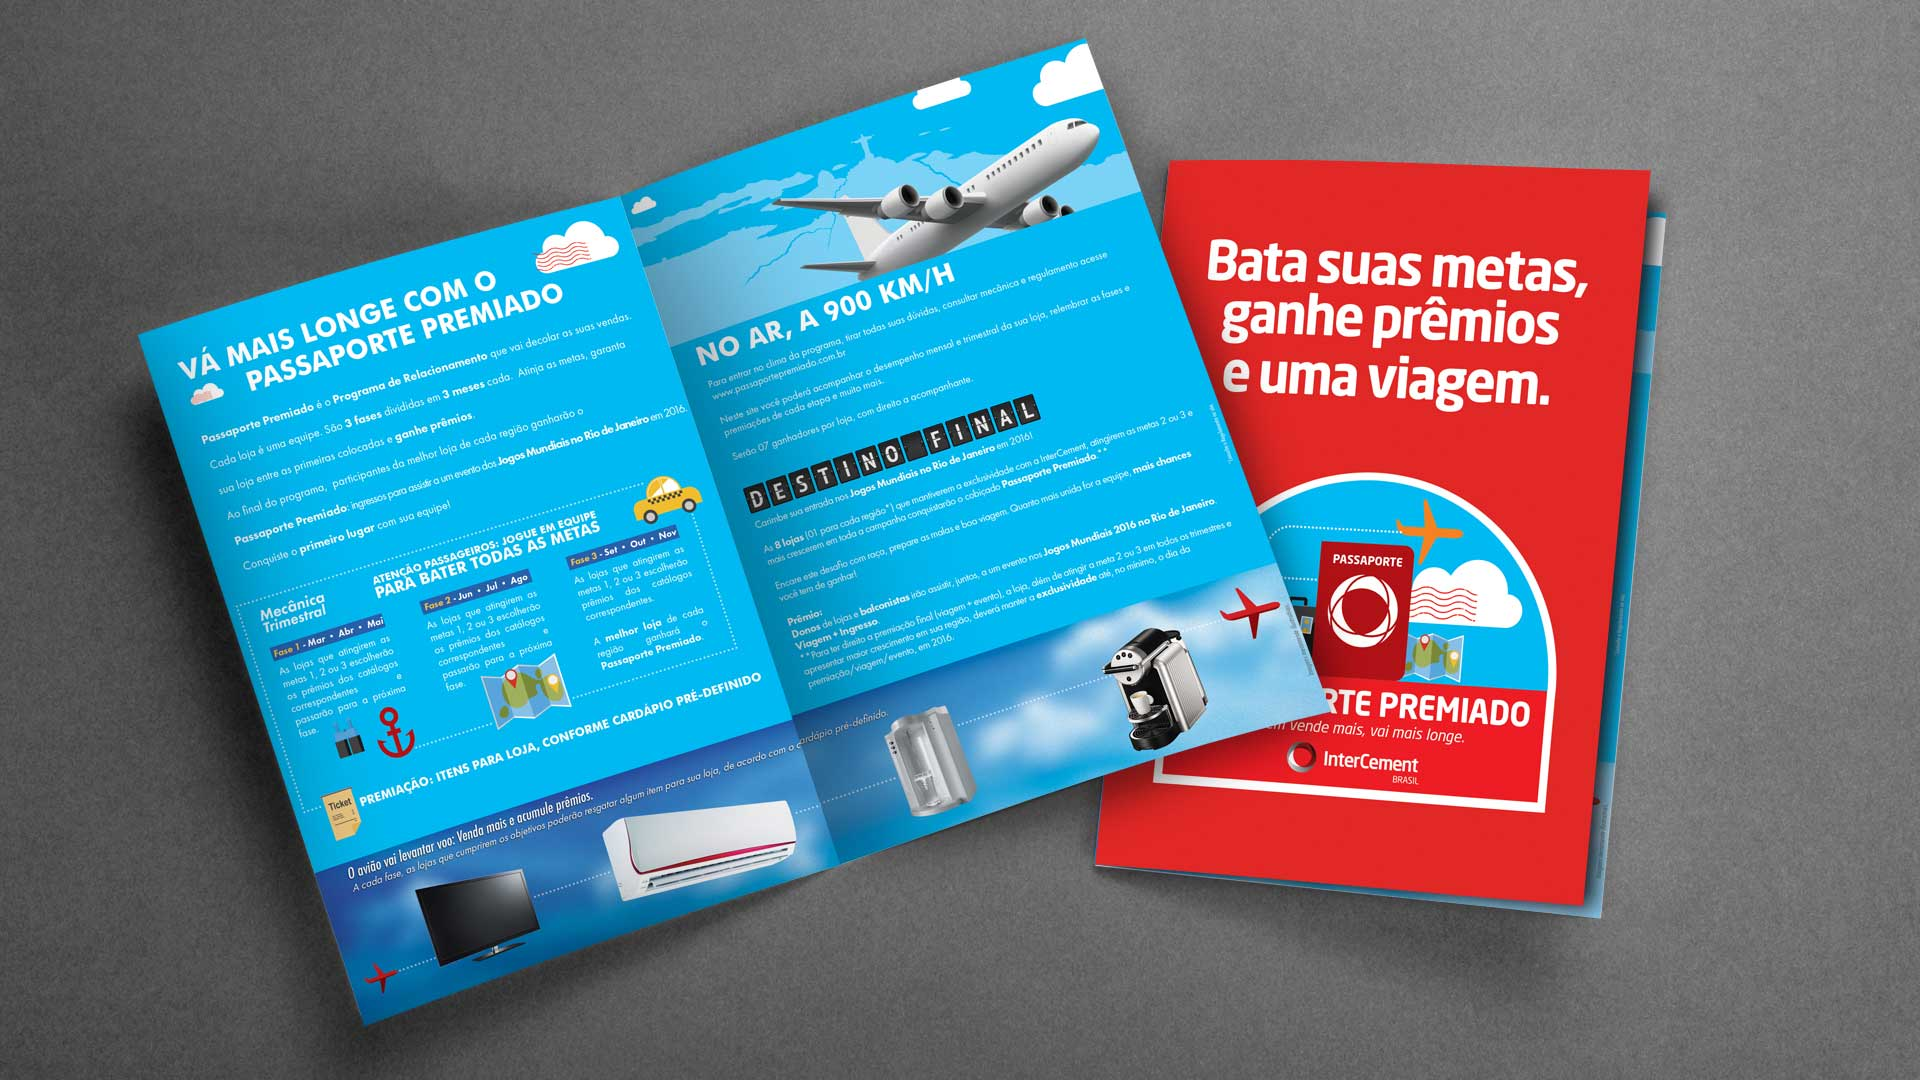 Case Intercement – Passaporte Premiado